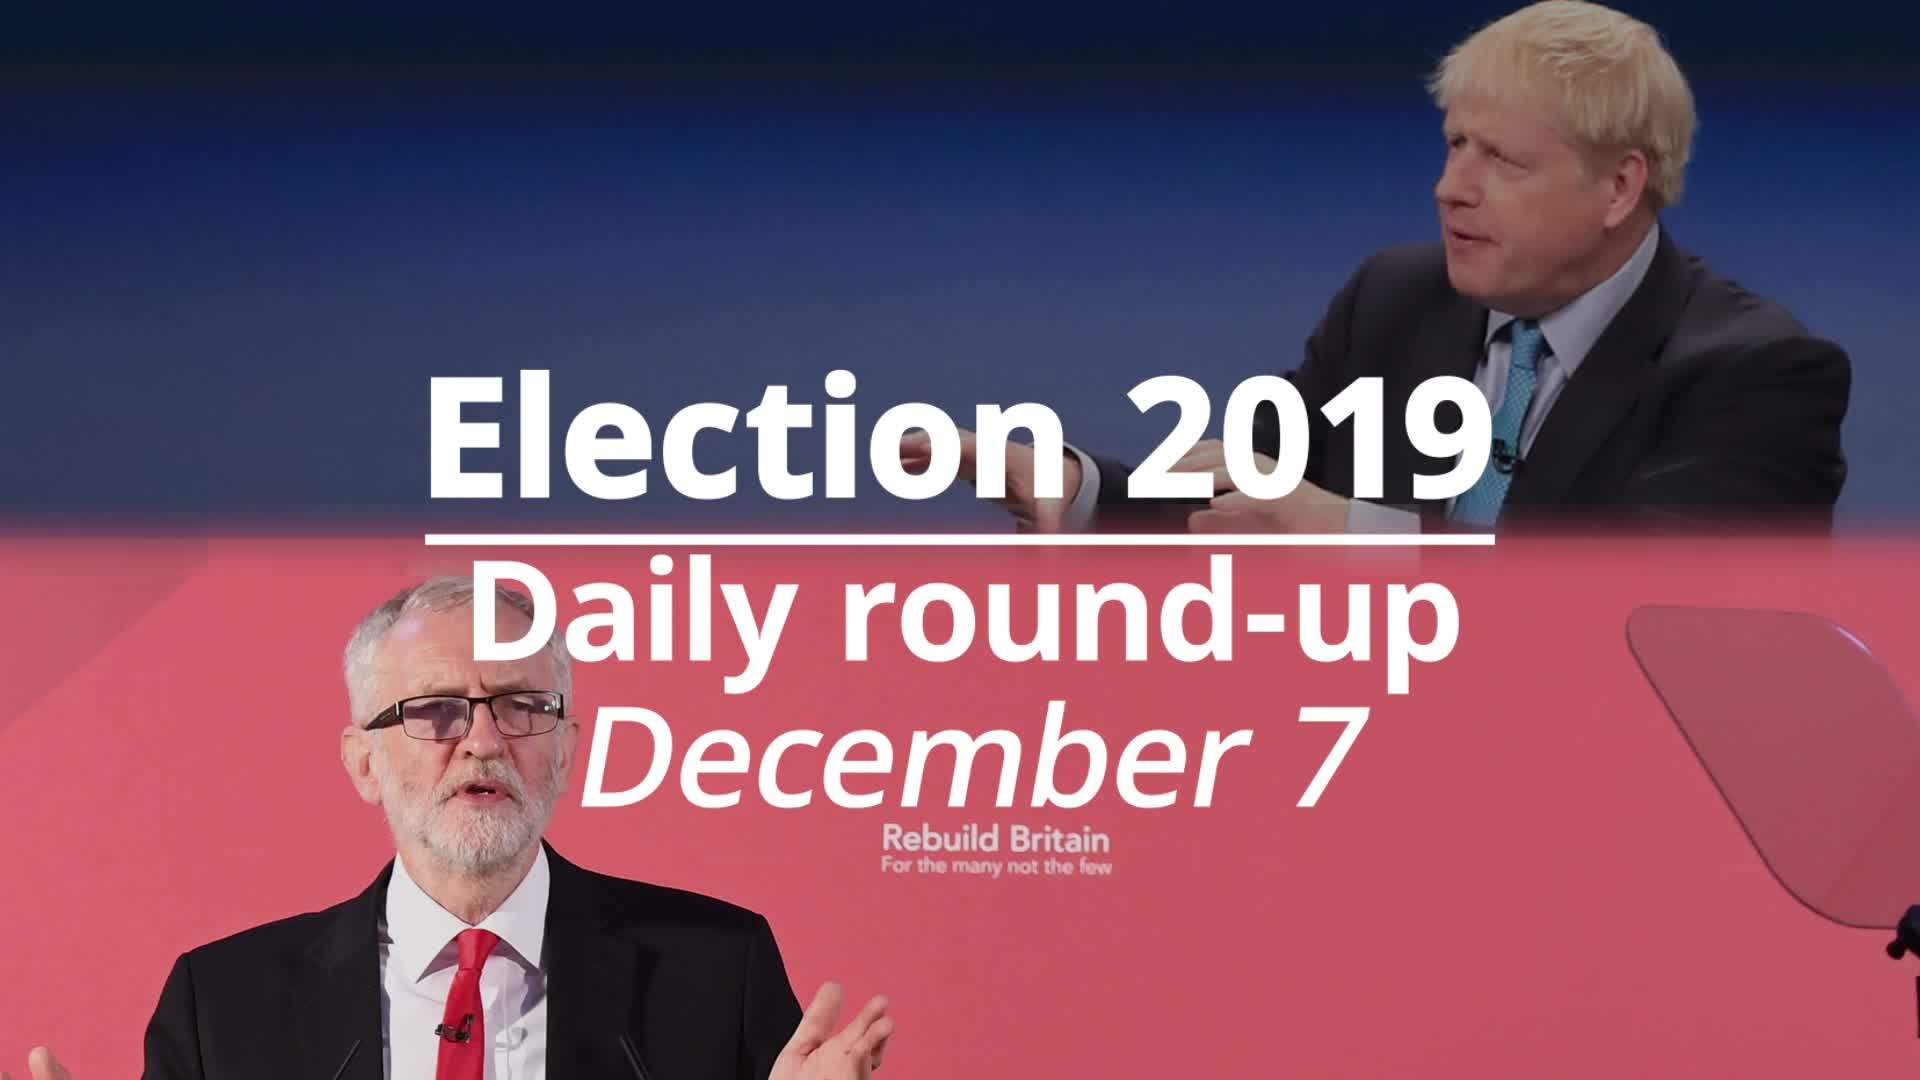 Election 2019: December 7 round-up